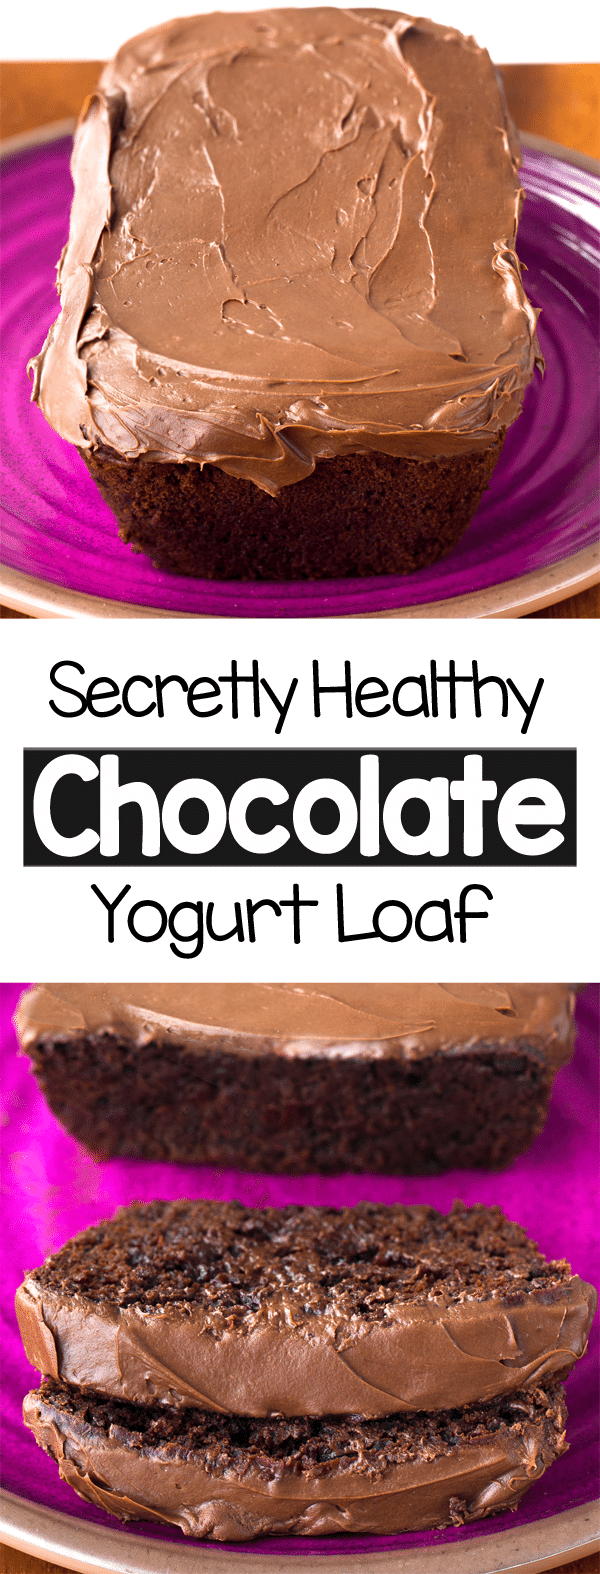 Chocolate yogurt healthy snack or dessert recipe